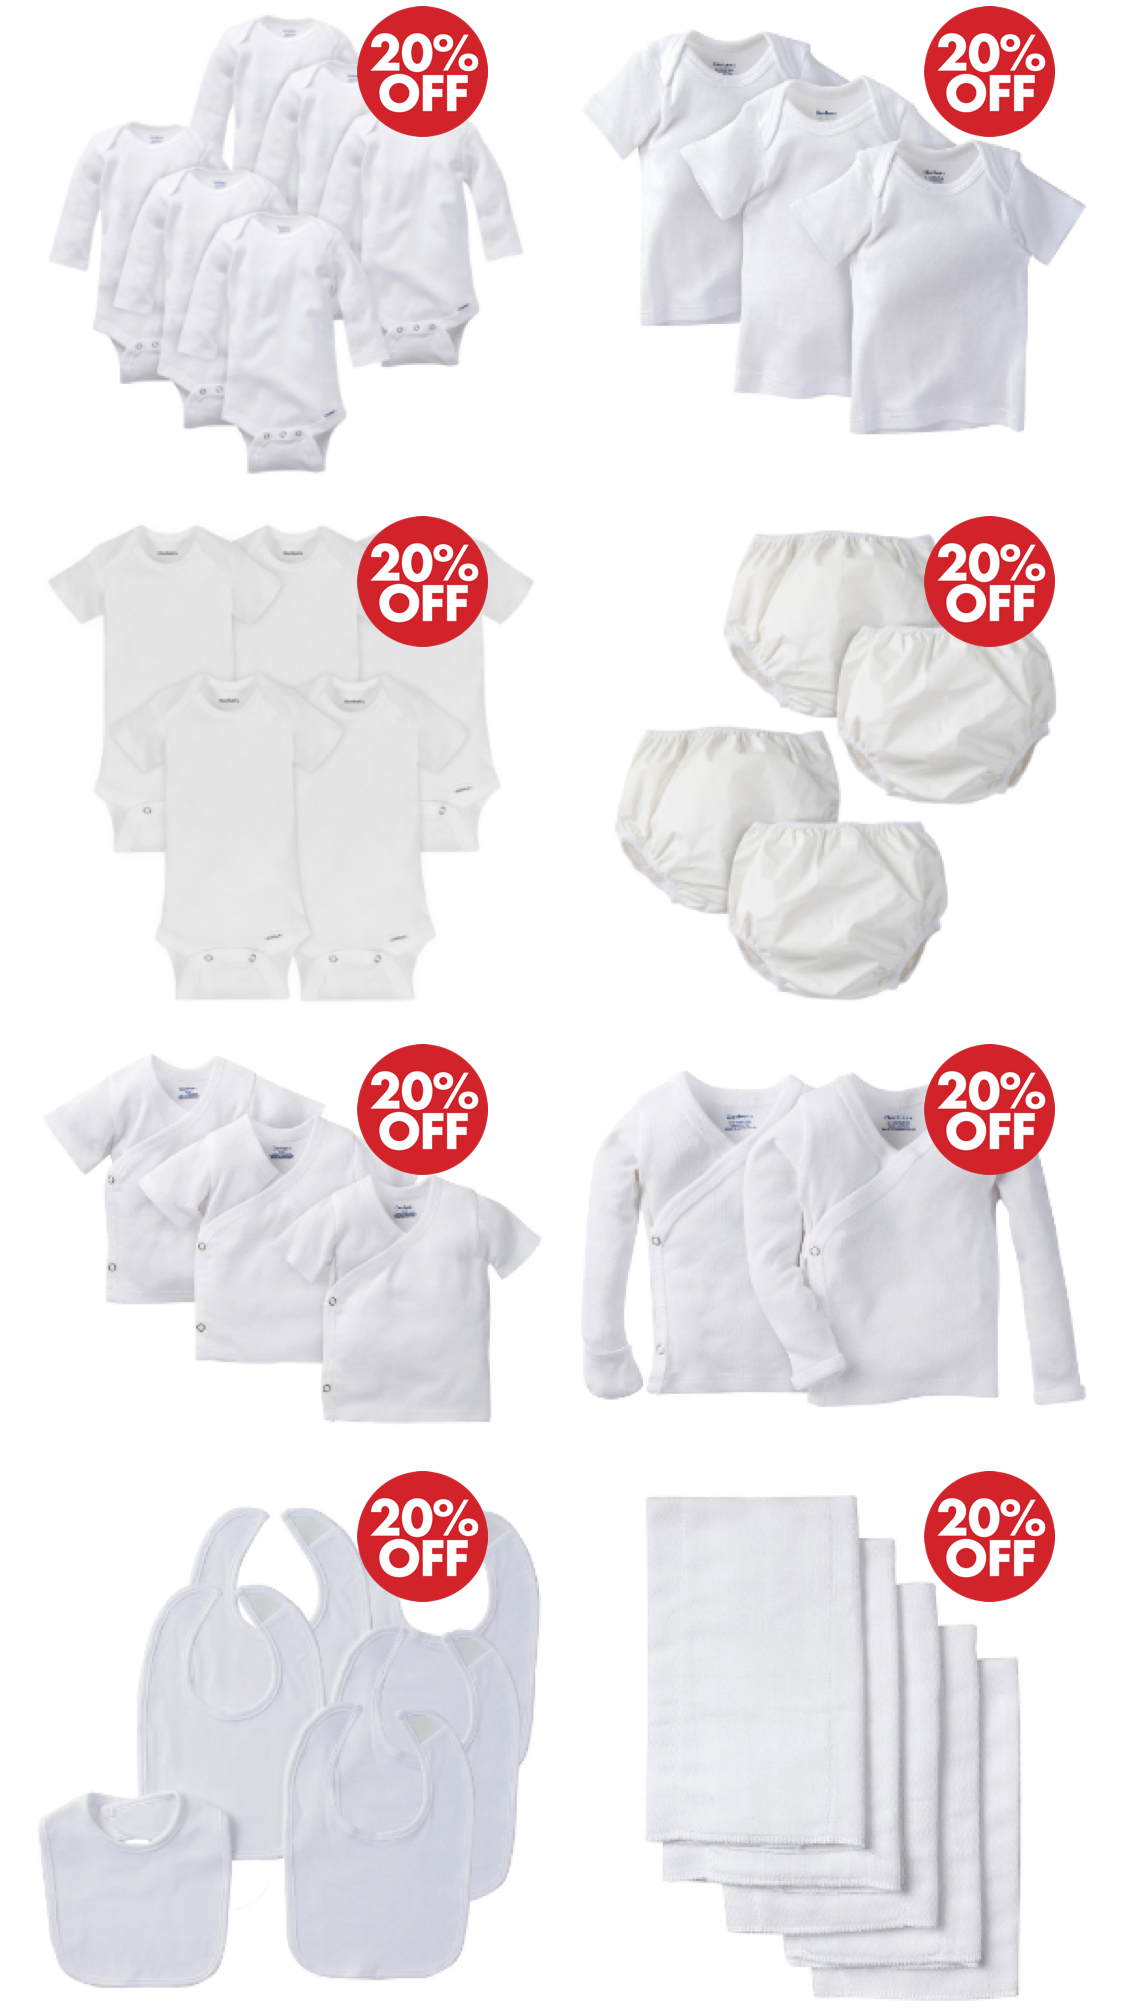 20% Off White Essentials - Onesies, Socks, Burp Cloths, and More! Click to Shop